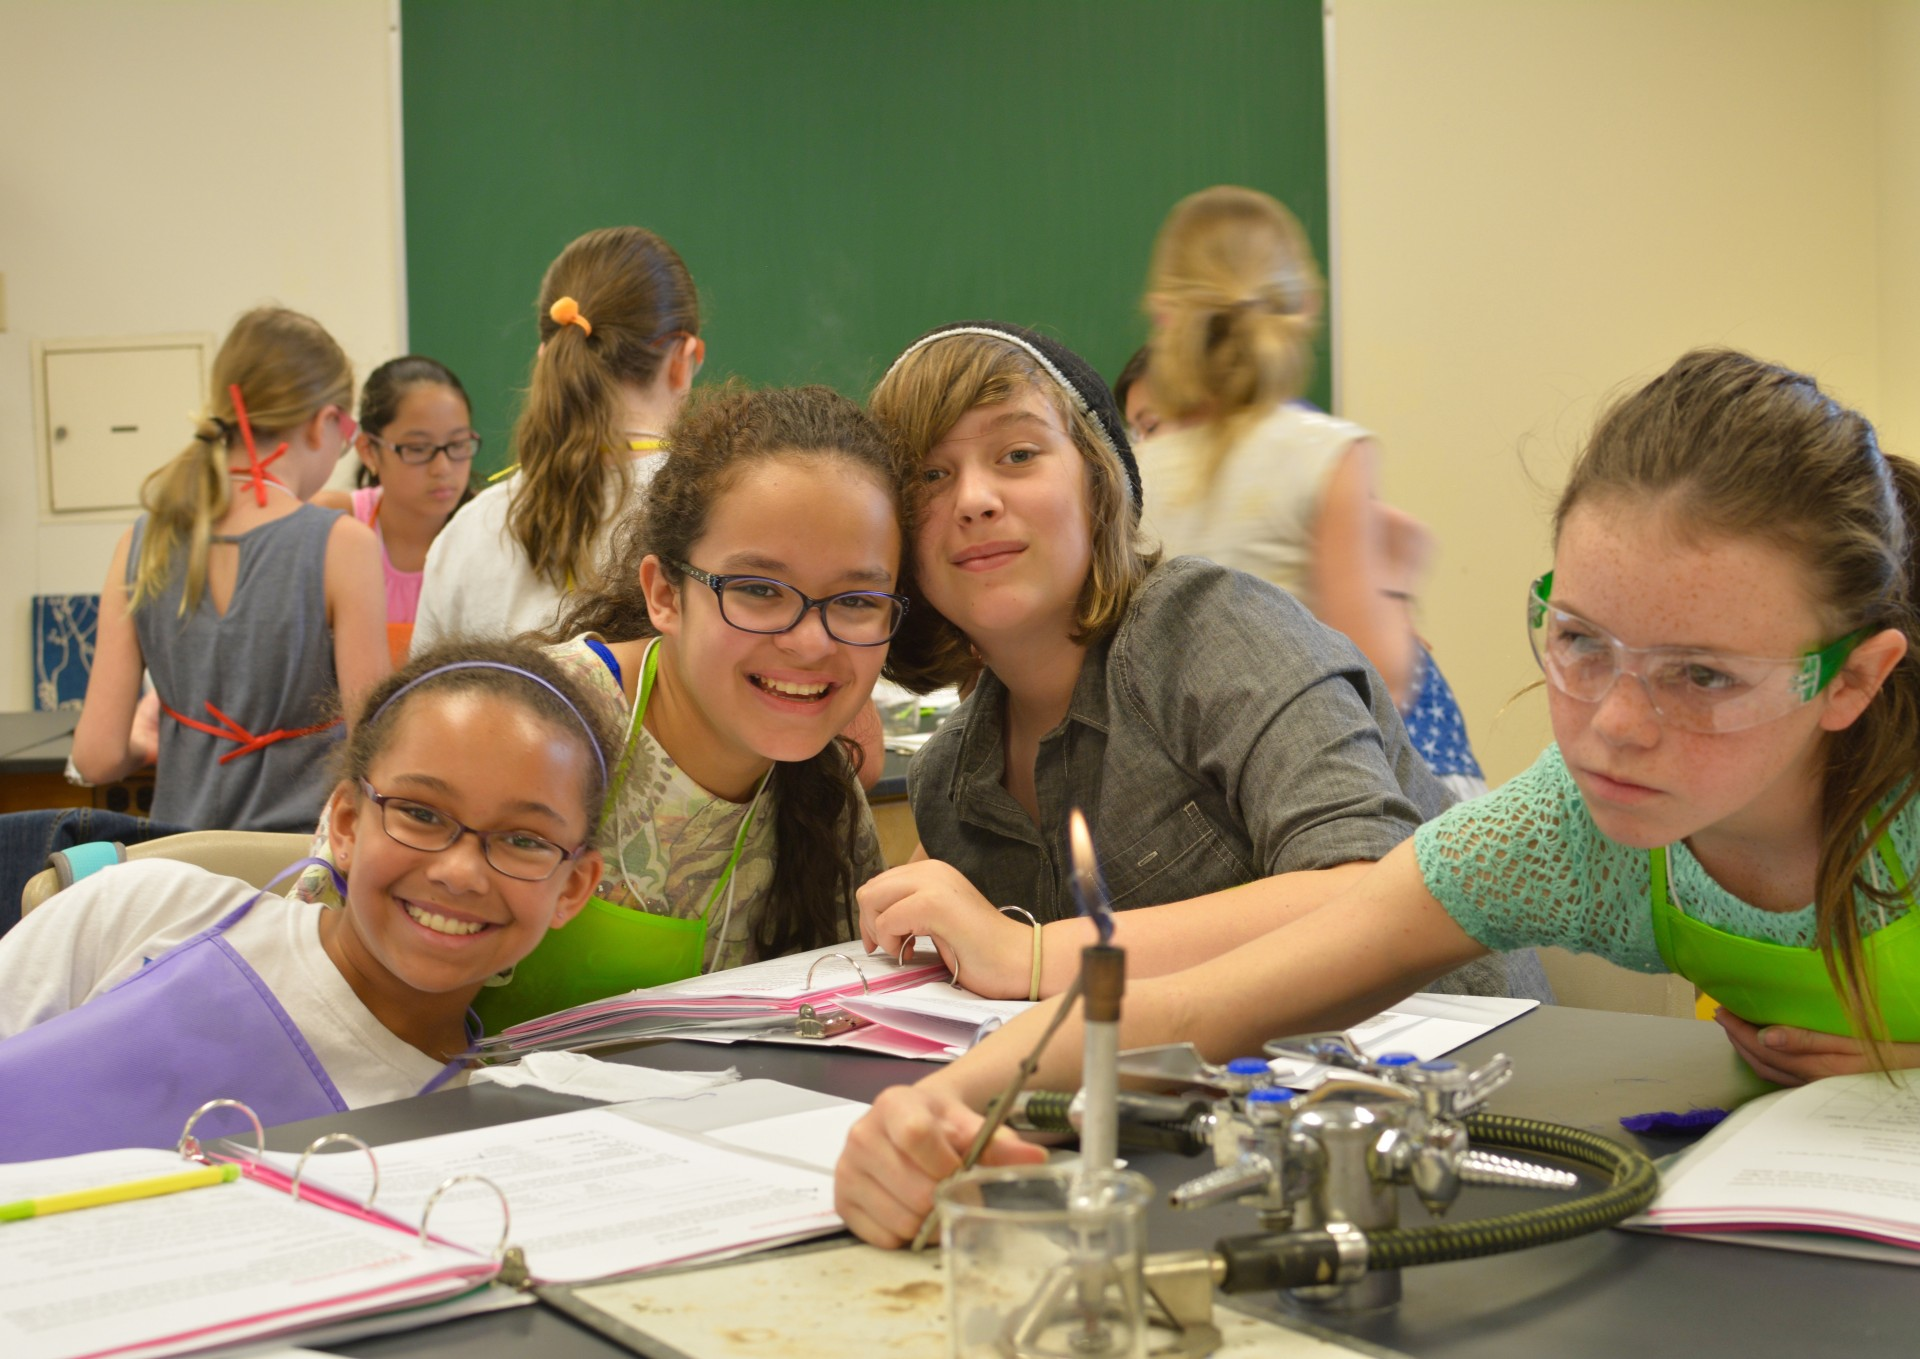 Girls' performance on the second national test of technology and engineering literacy continued to shine.